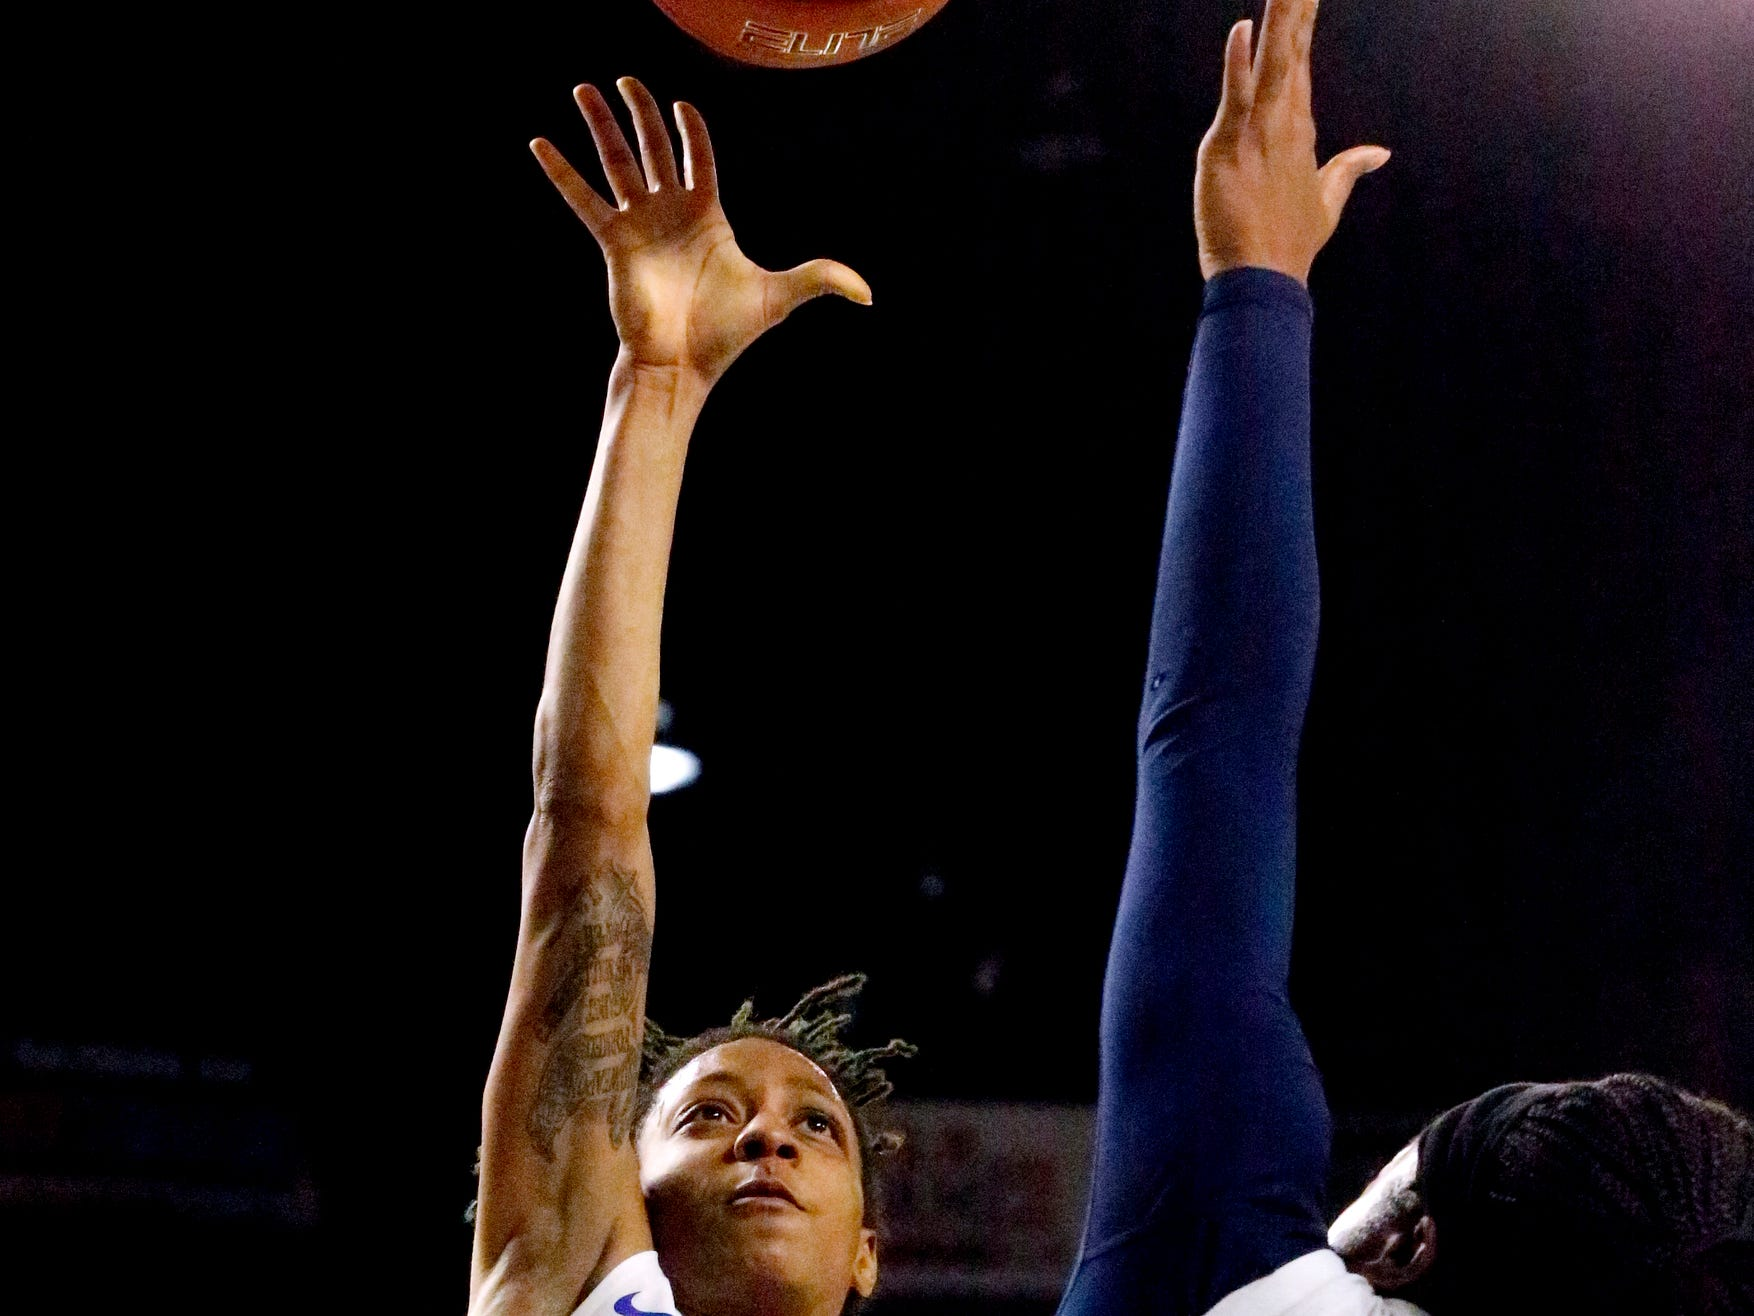 MTSU's guard A'Queen Hayes (1) goes up for a s hot as Rice's guard Erica Ogwumike (13) guards her on Thursday Jan. 24, 2019.